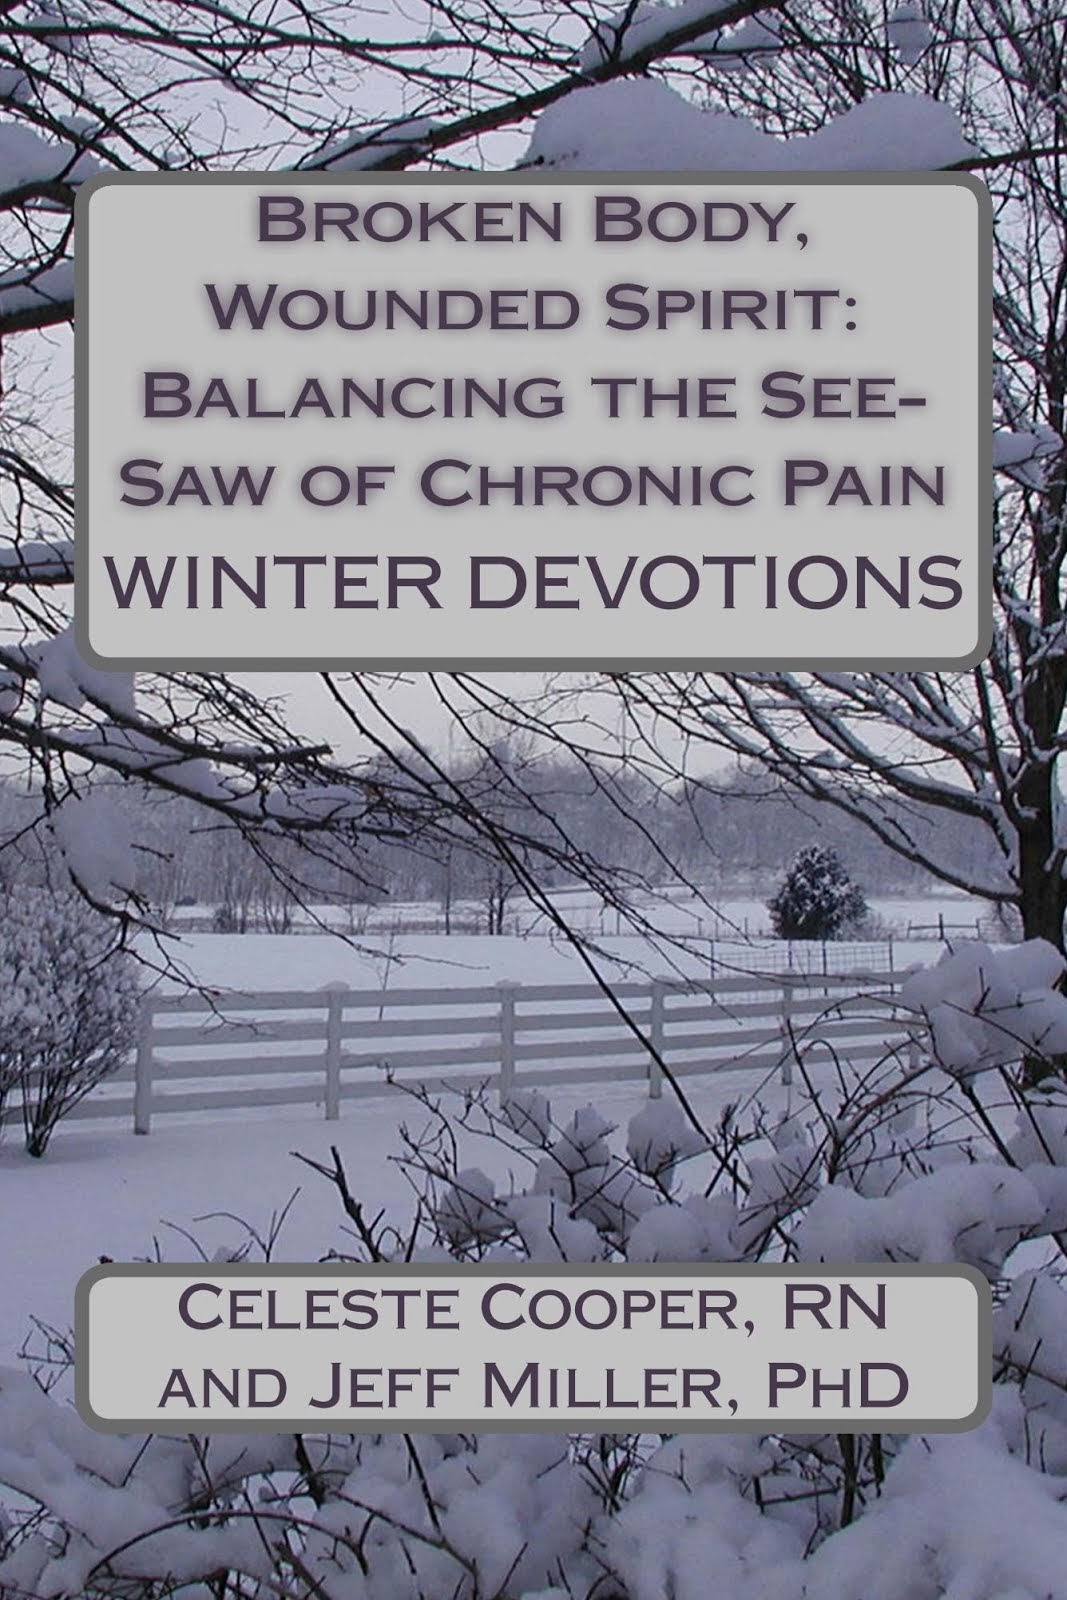 Broken Body, Wounded Spirit: Balancing the See-Saw of Chronic Pain